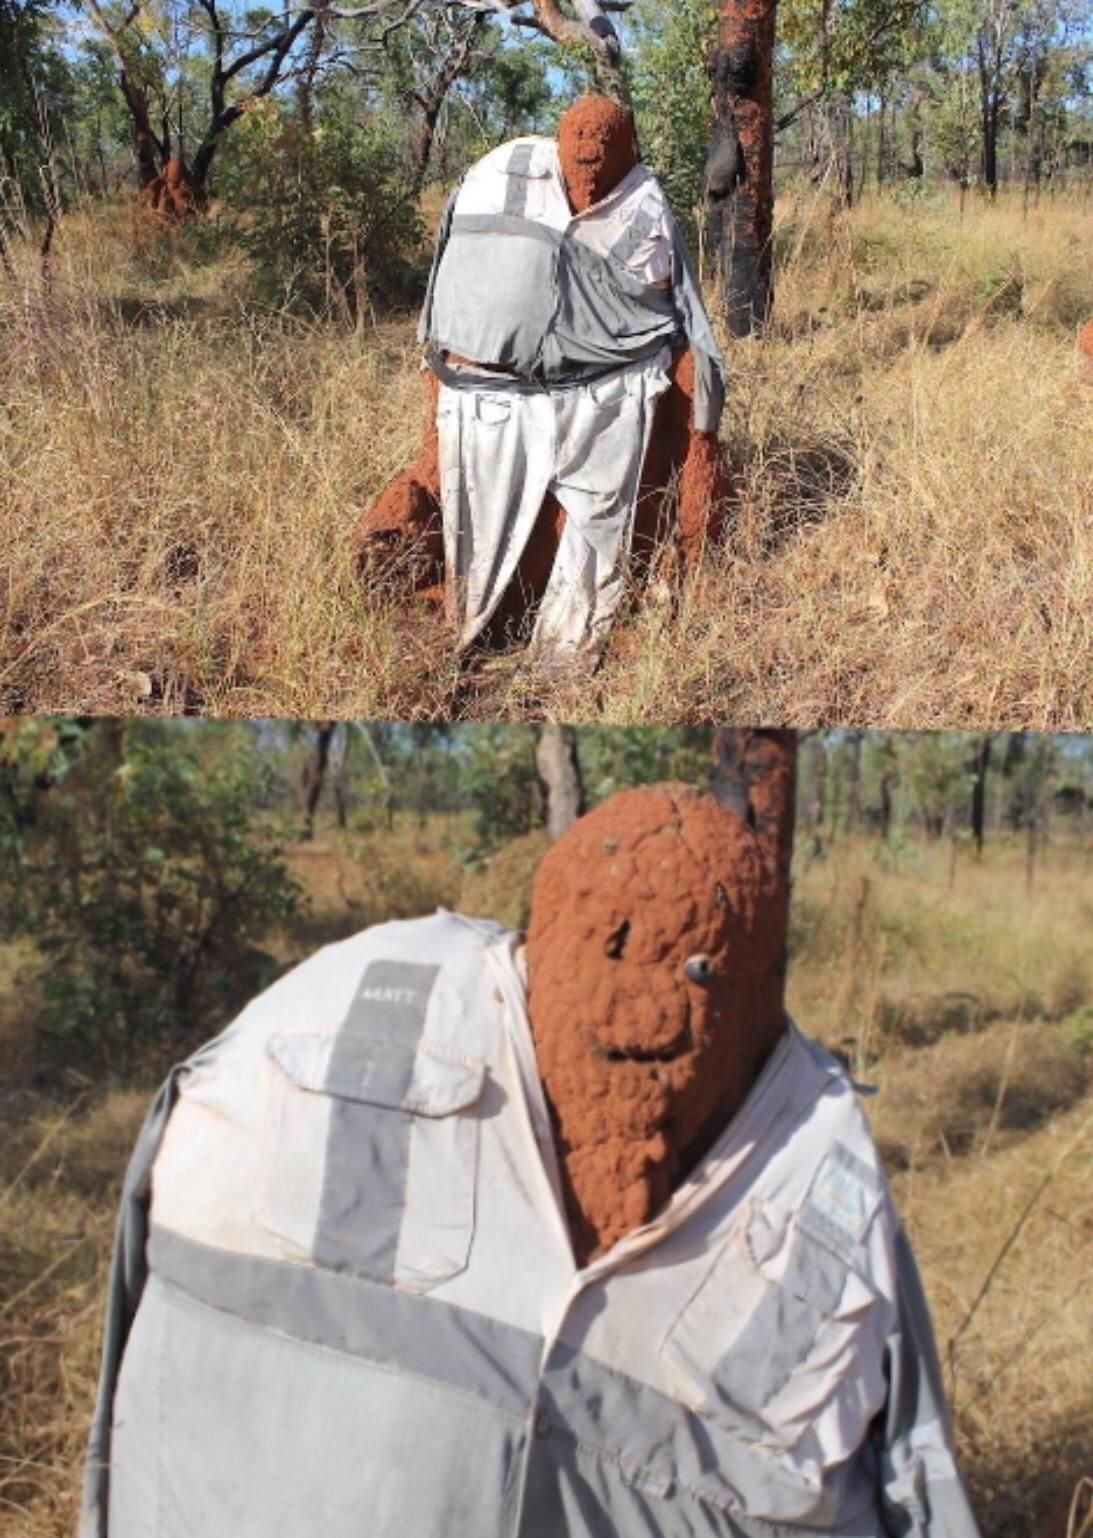 Australians putting clothes on termite mounds